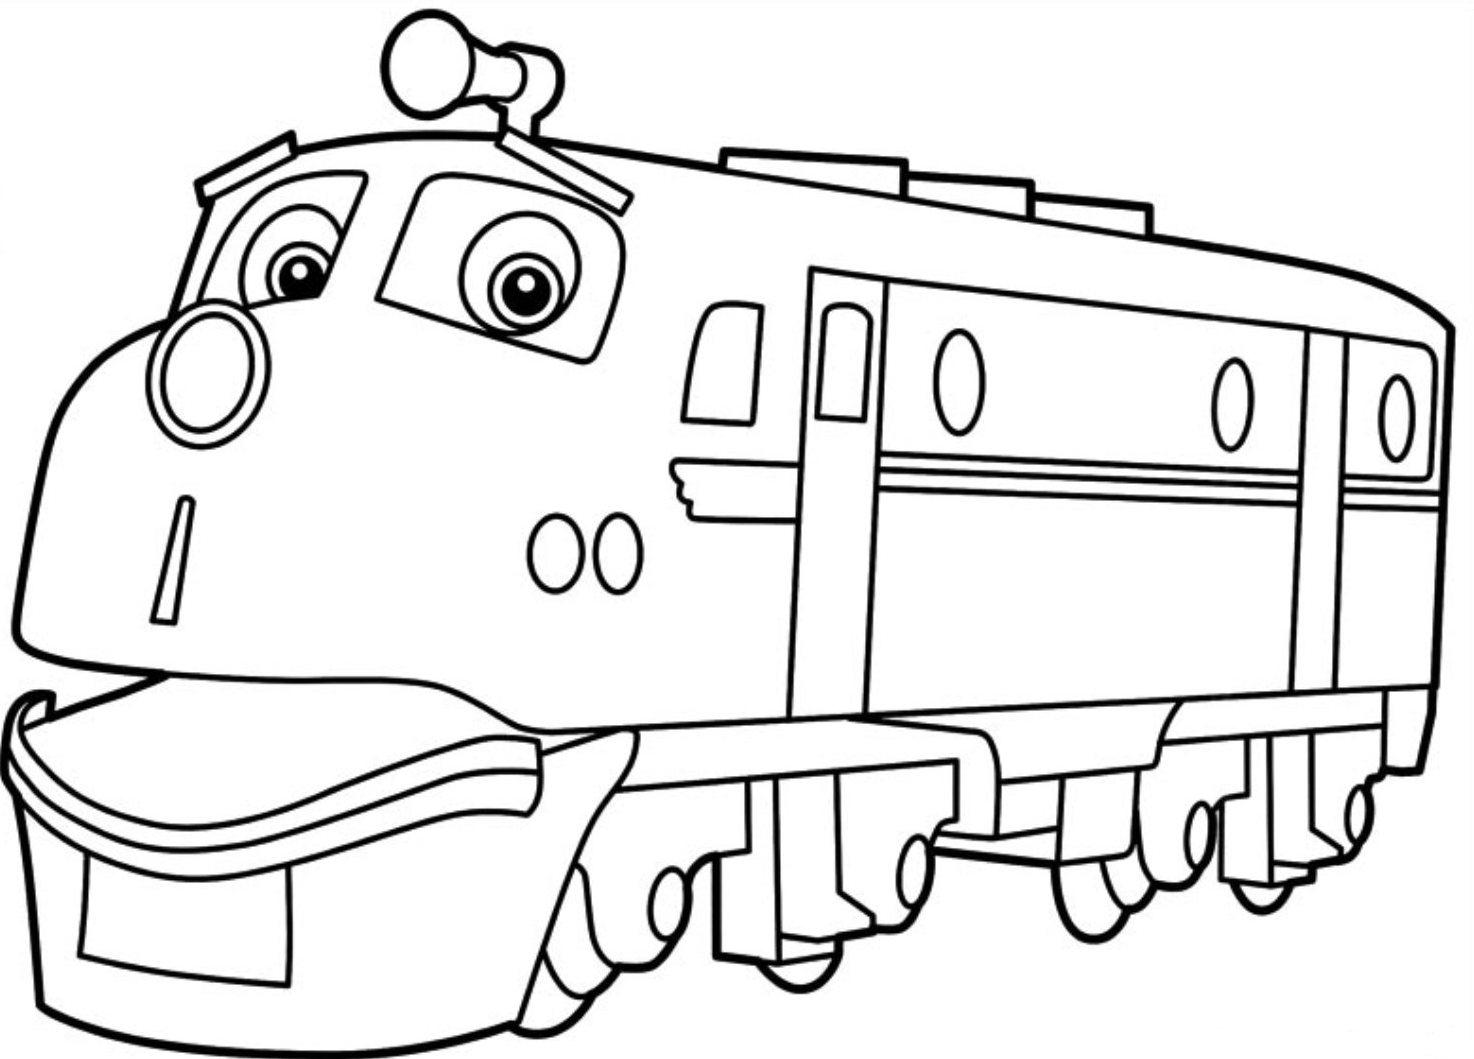 Printable Chuggington Coloring Pages Coloring Me Chuggington Colouring Pages